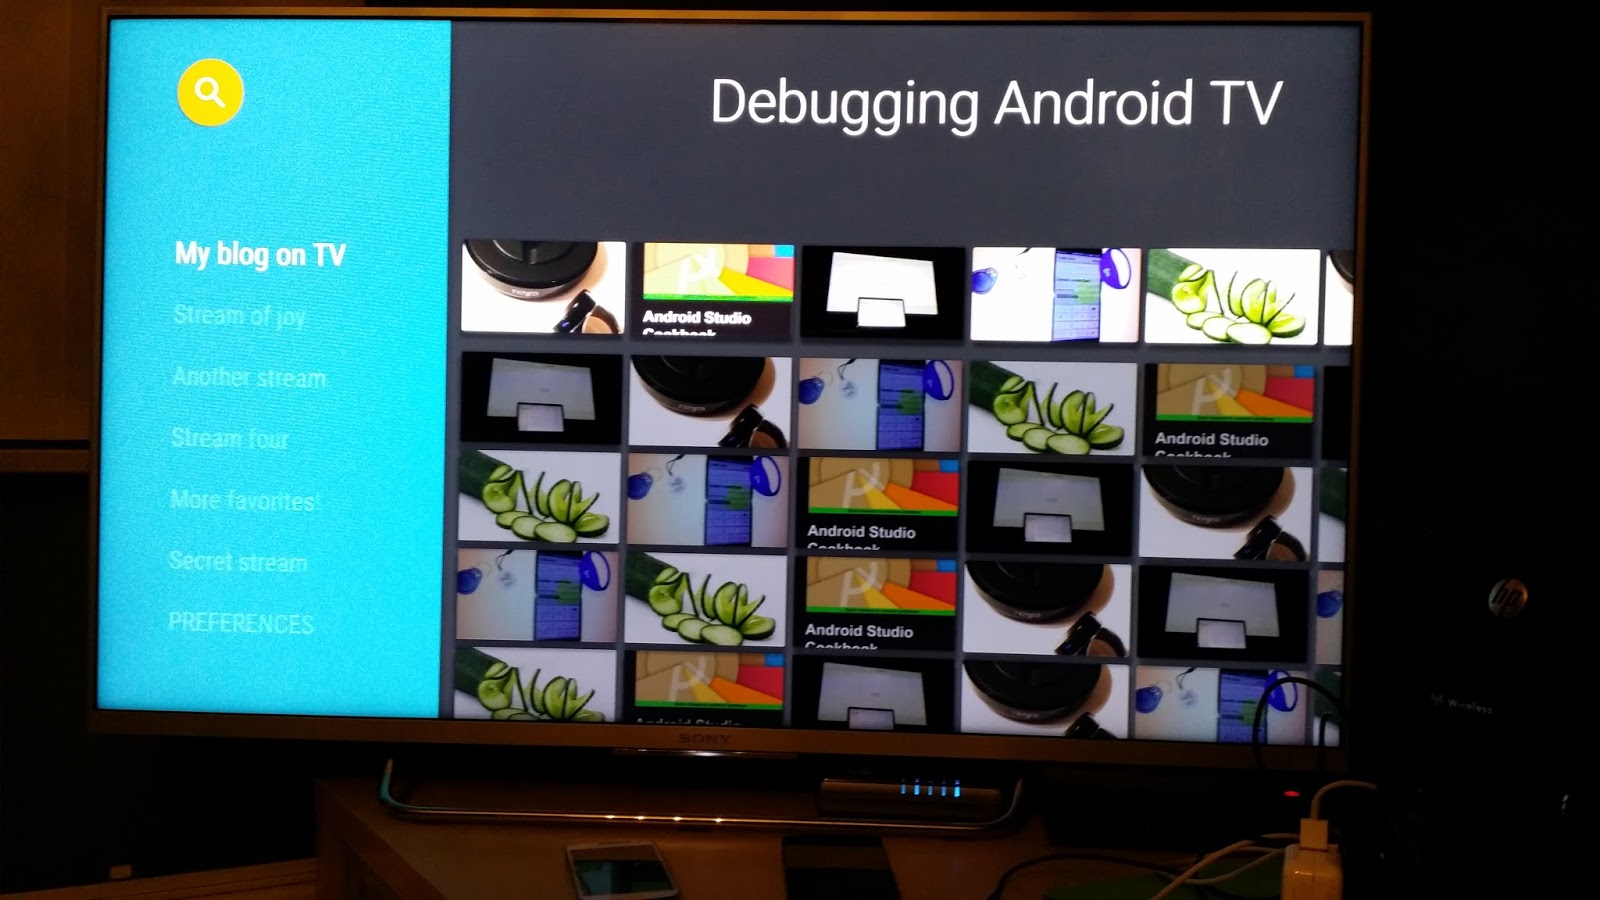 App development stories: Apps on the big screen part III: Debugging